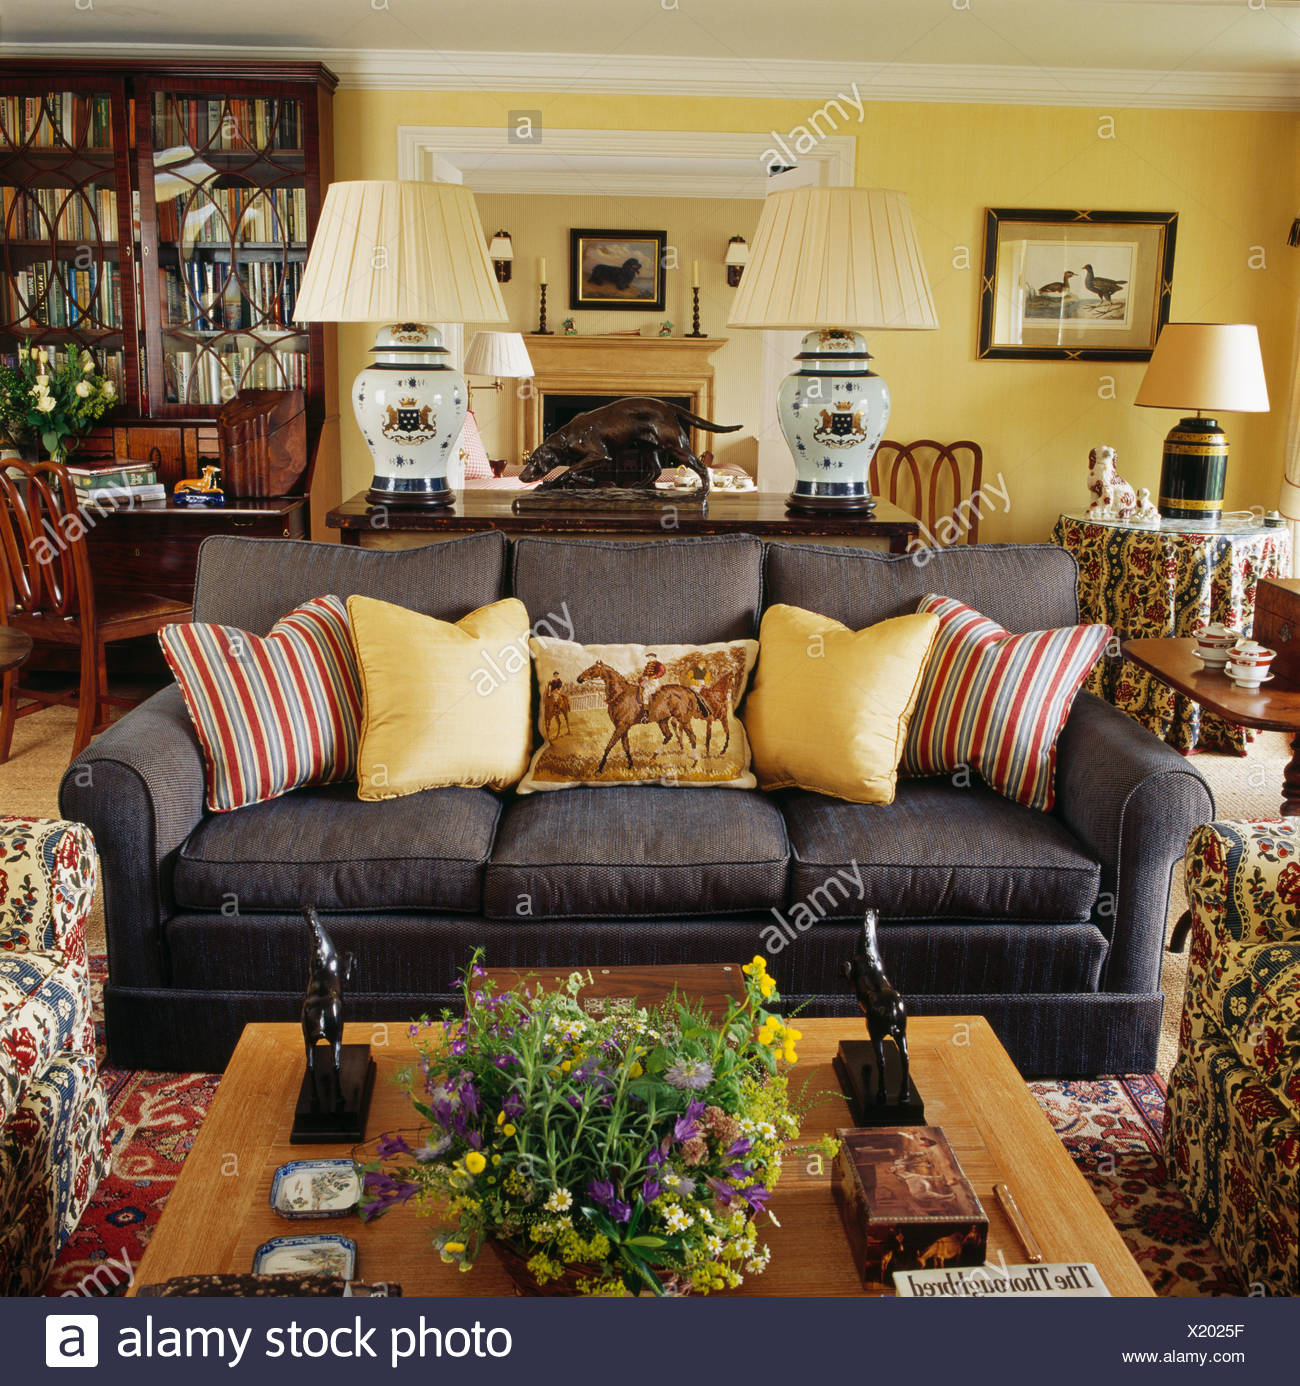 Attrayant Pale Yellow And Striped Cushions On Dark Grey Sofa In Yellow Country Living  Room